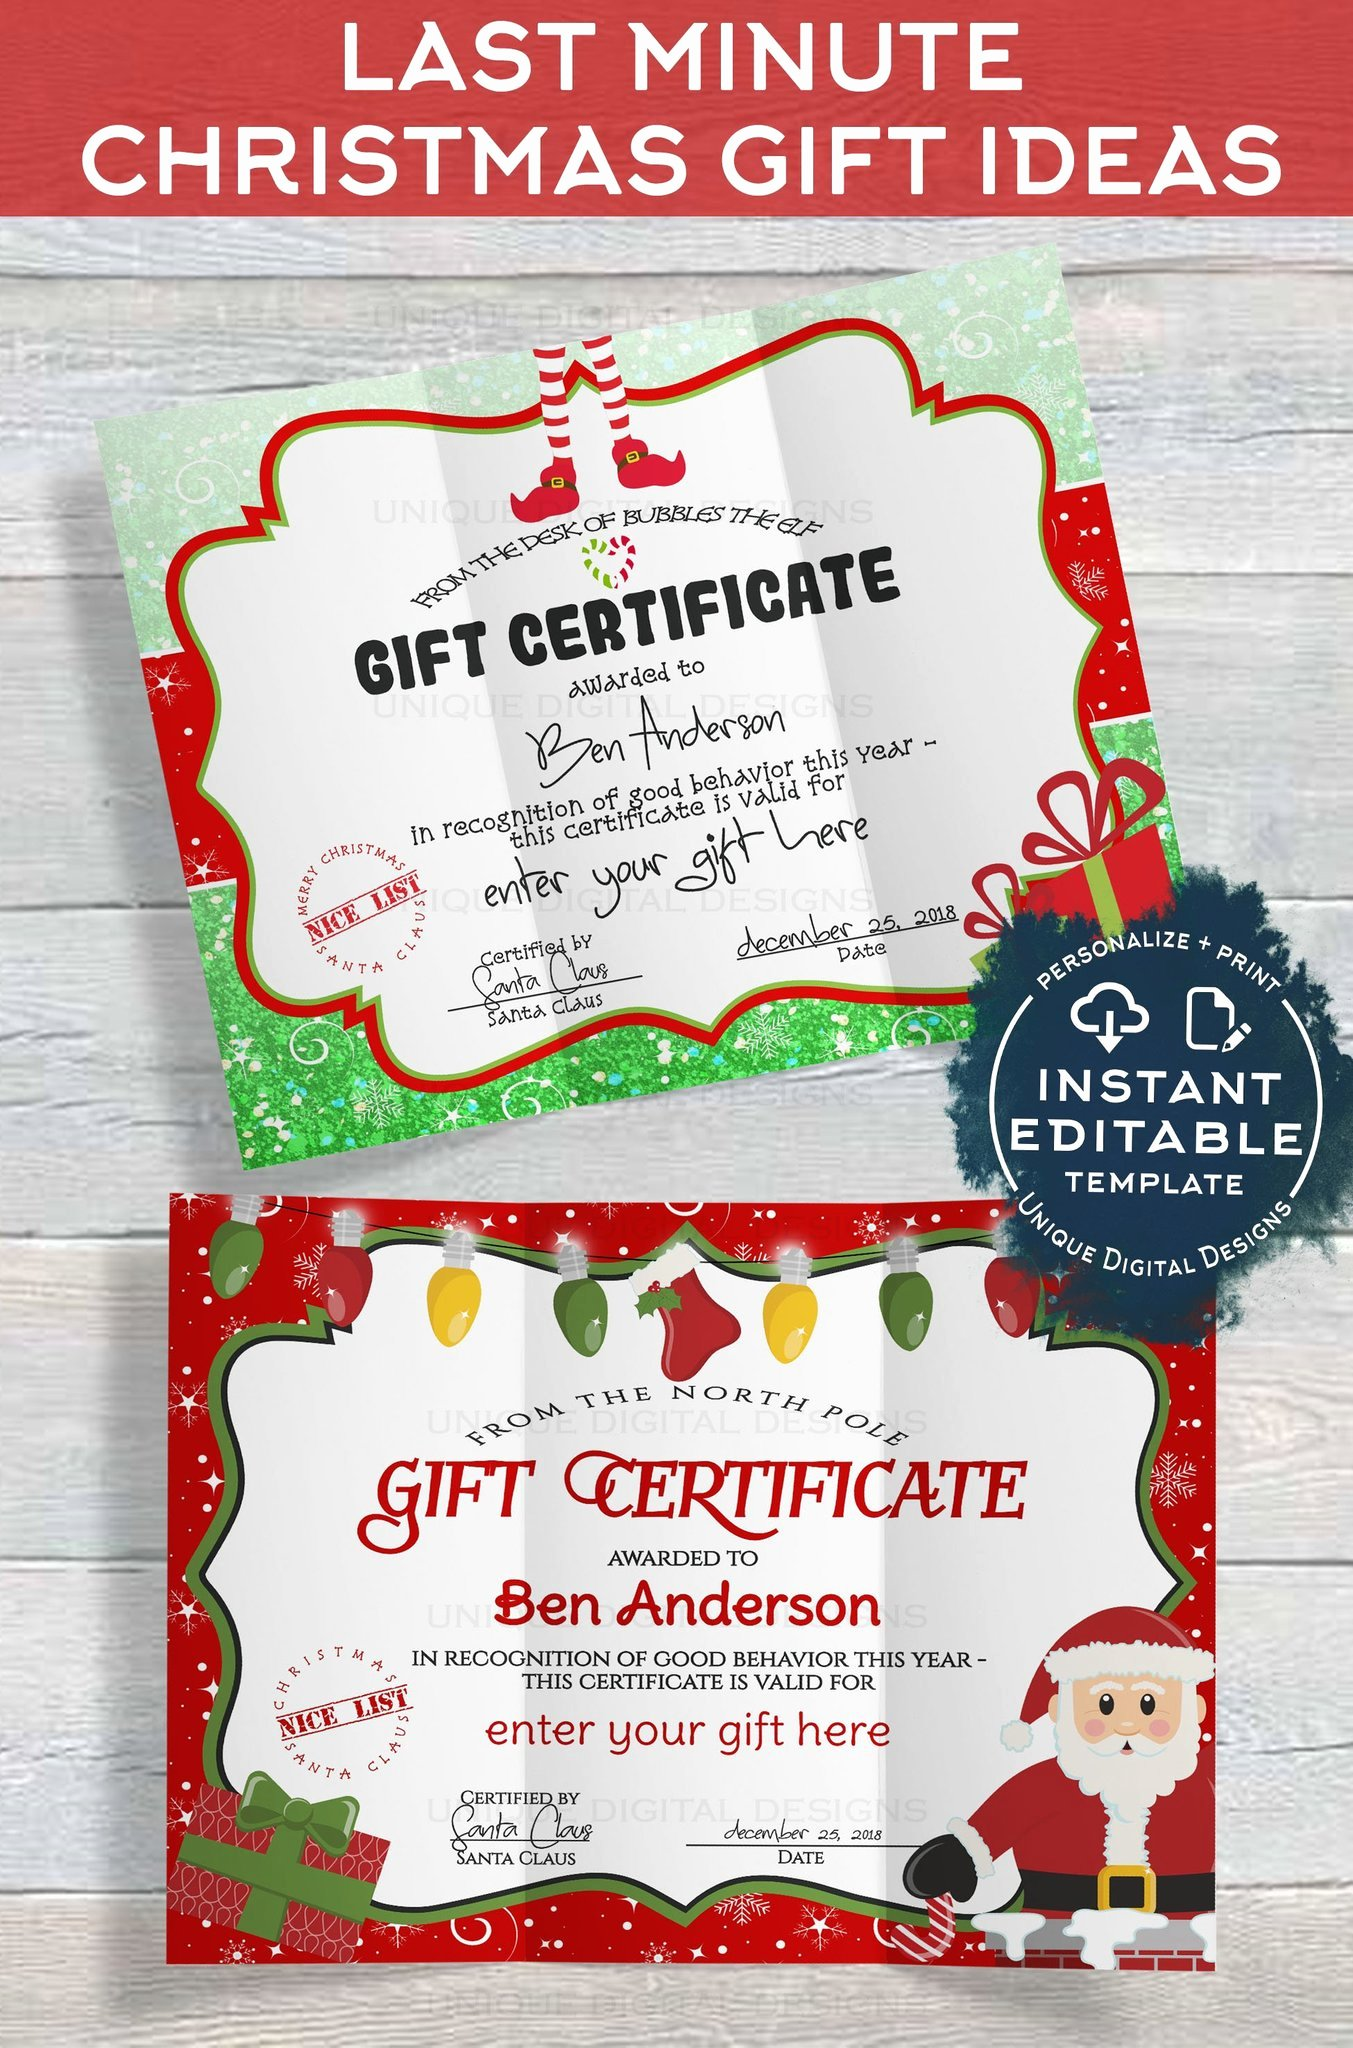 Santa Gift Certificate Template New Gift Certificate Template Editable Gift Certificate From